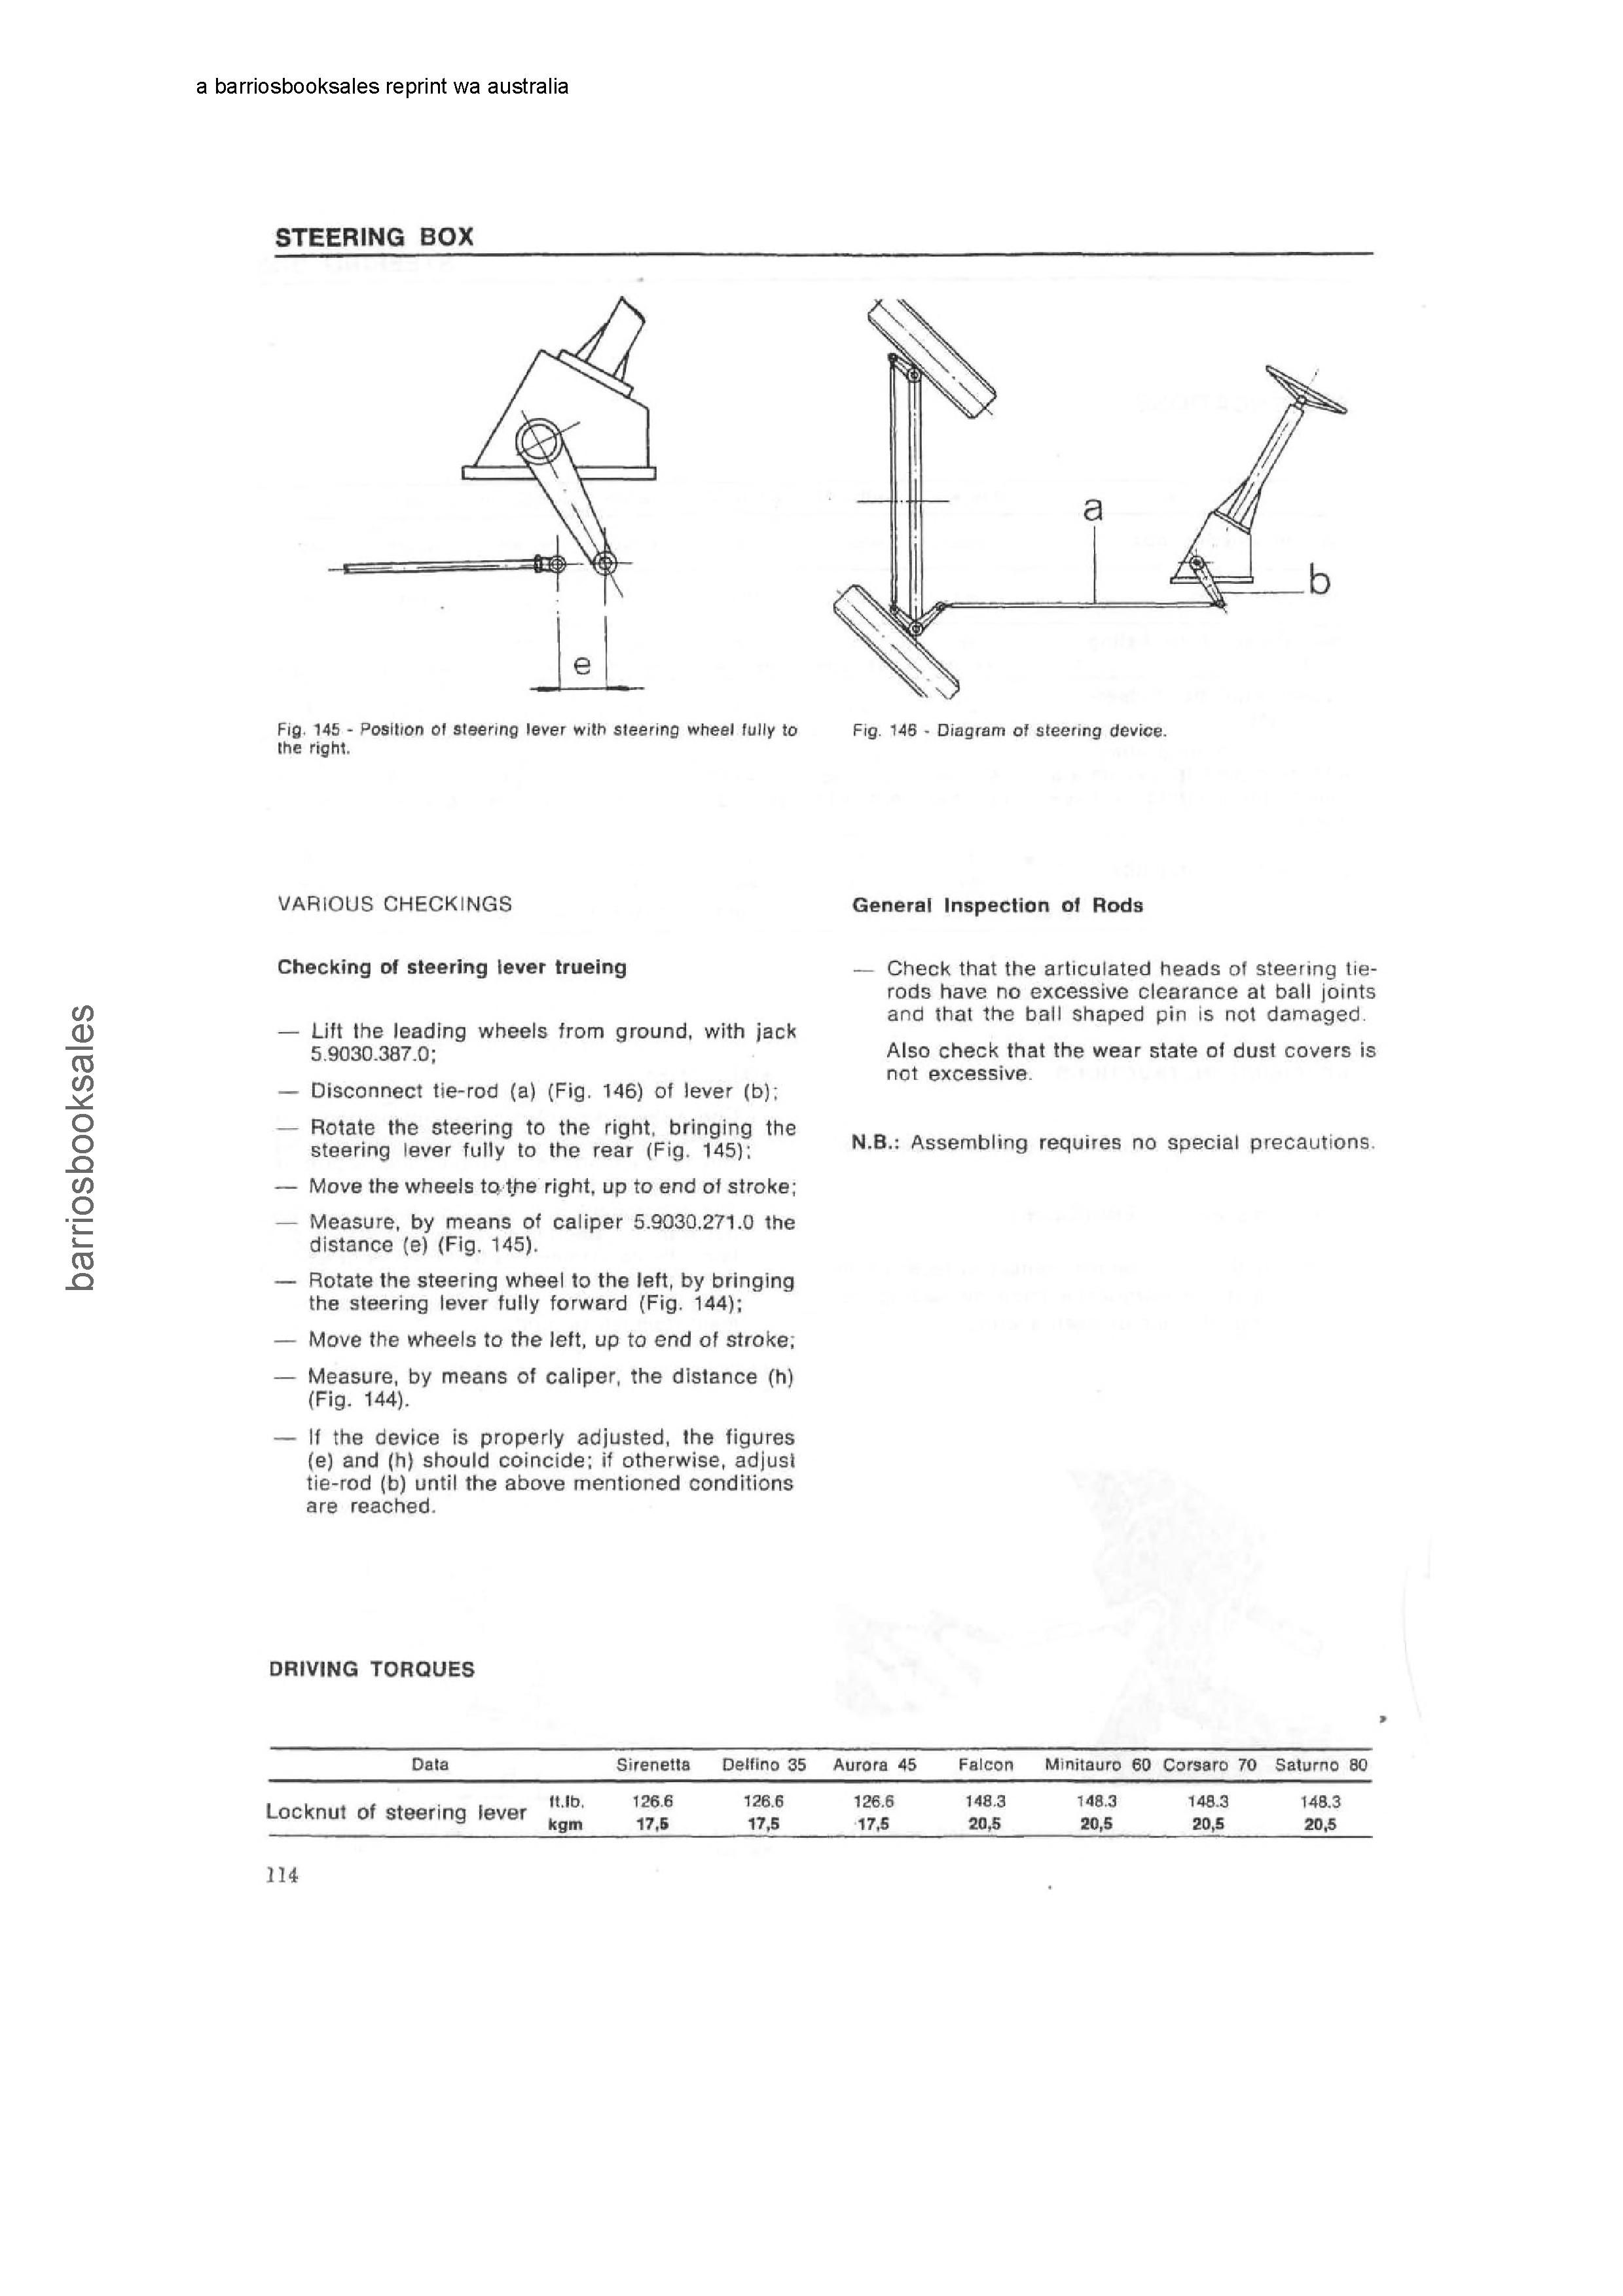 30 Best SAME tractor manuals to download images | Manual, Tractor, Tractors